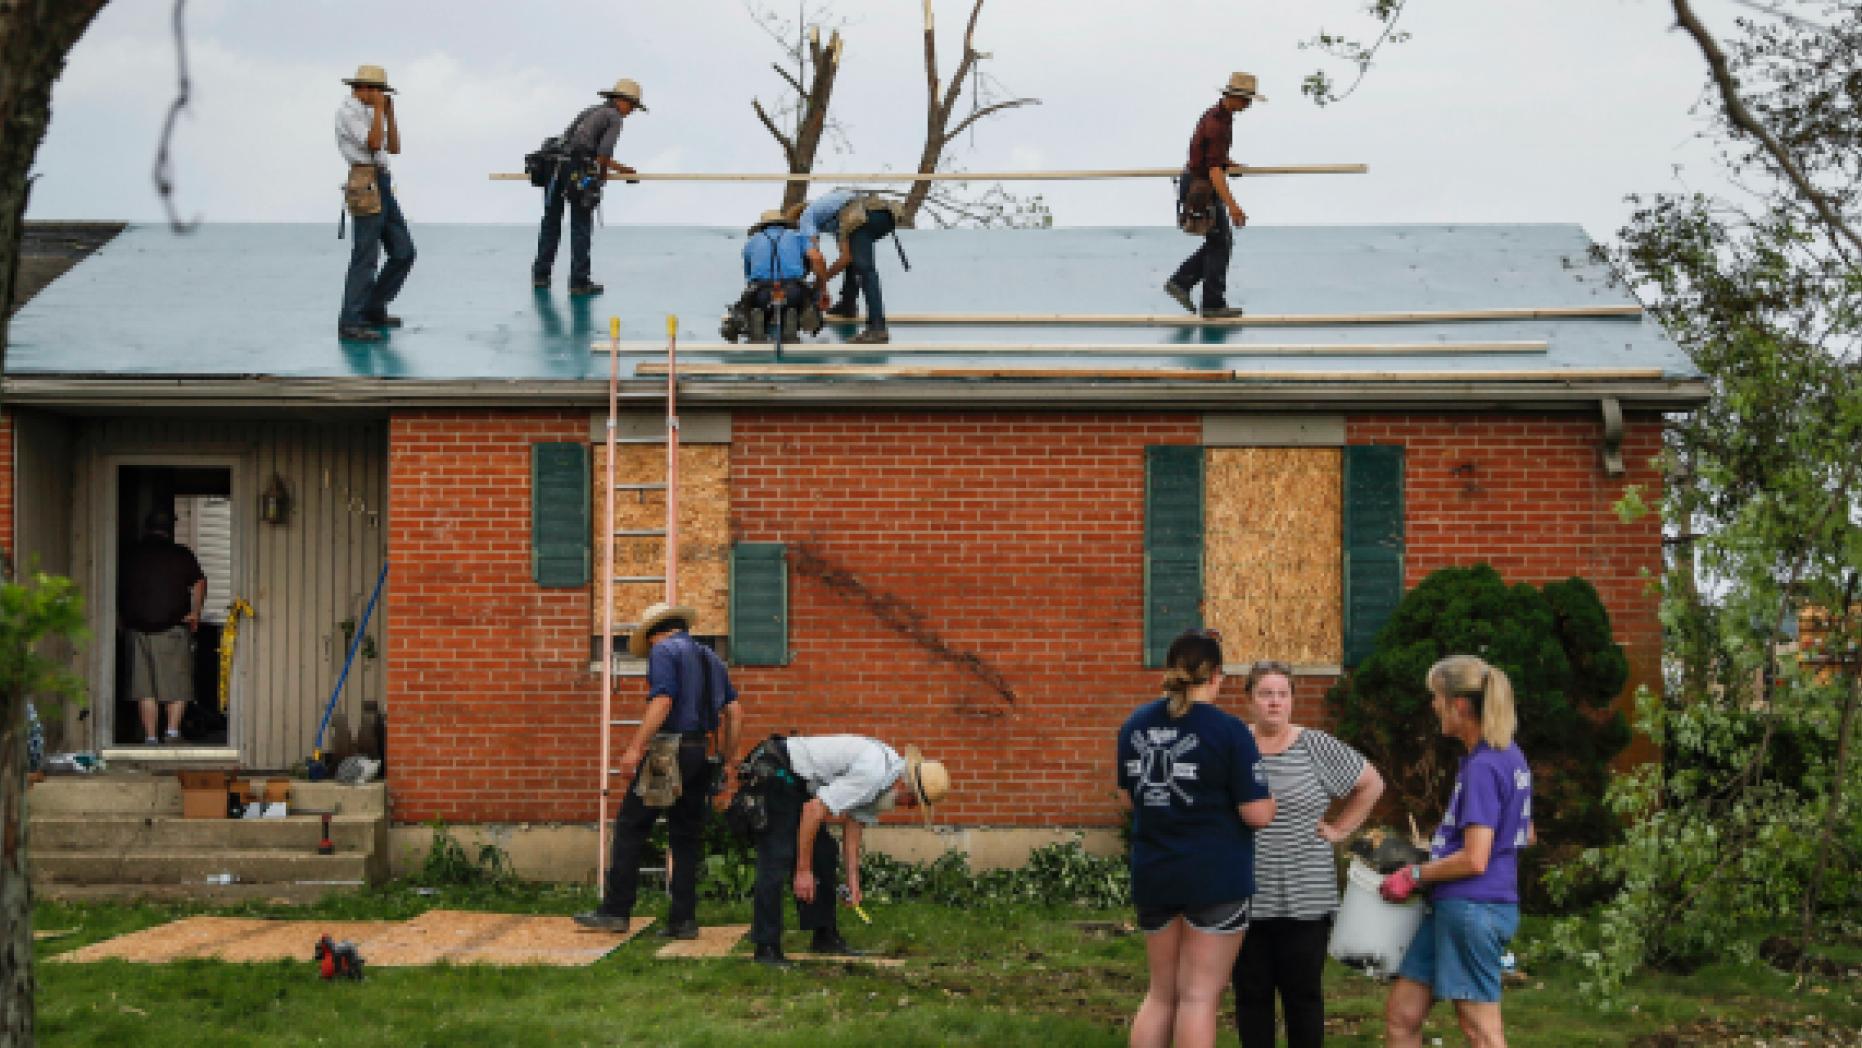 Residents and volunteers clean debris from damaged homes litters the properties on Fairground Road in Celina, Ohio, Tuesday, May 28, 2019, after a tornado storm system passed through the area the previous night. (AP Photo/John Minchillo)